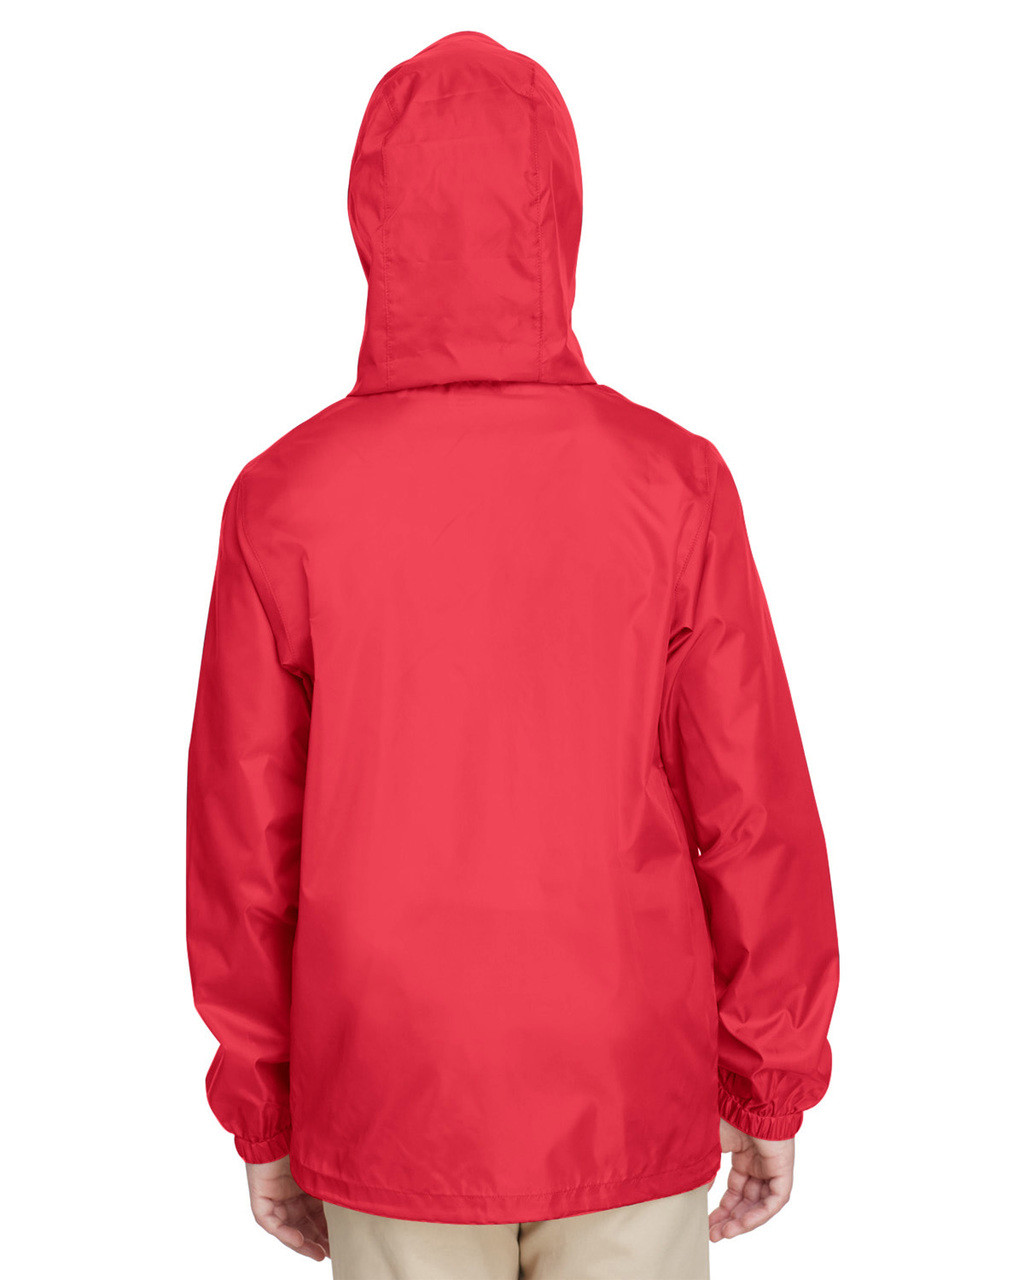 Sport Red, Back - TT73Y Team 365 Youth Zone Protect Lightweight Jacket  | BlankClothing.ca